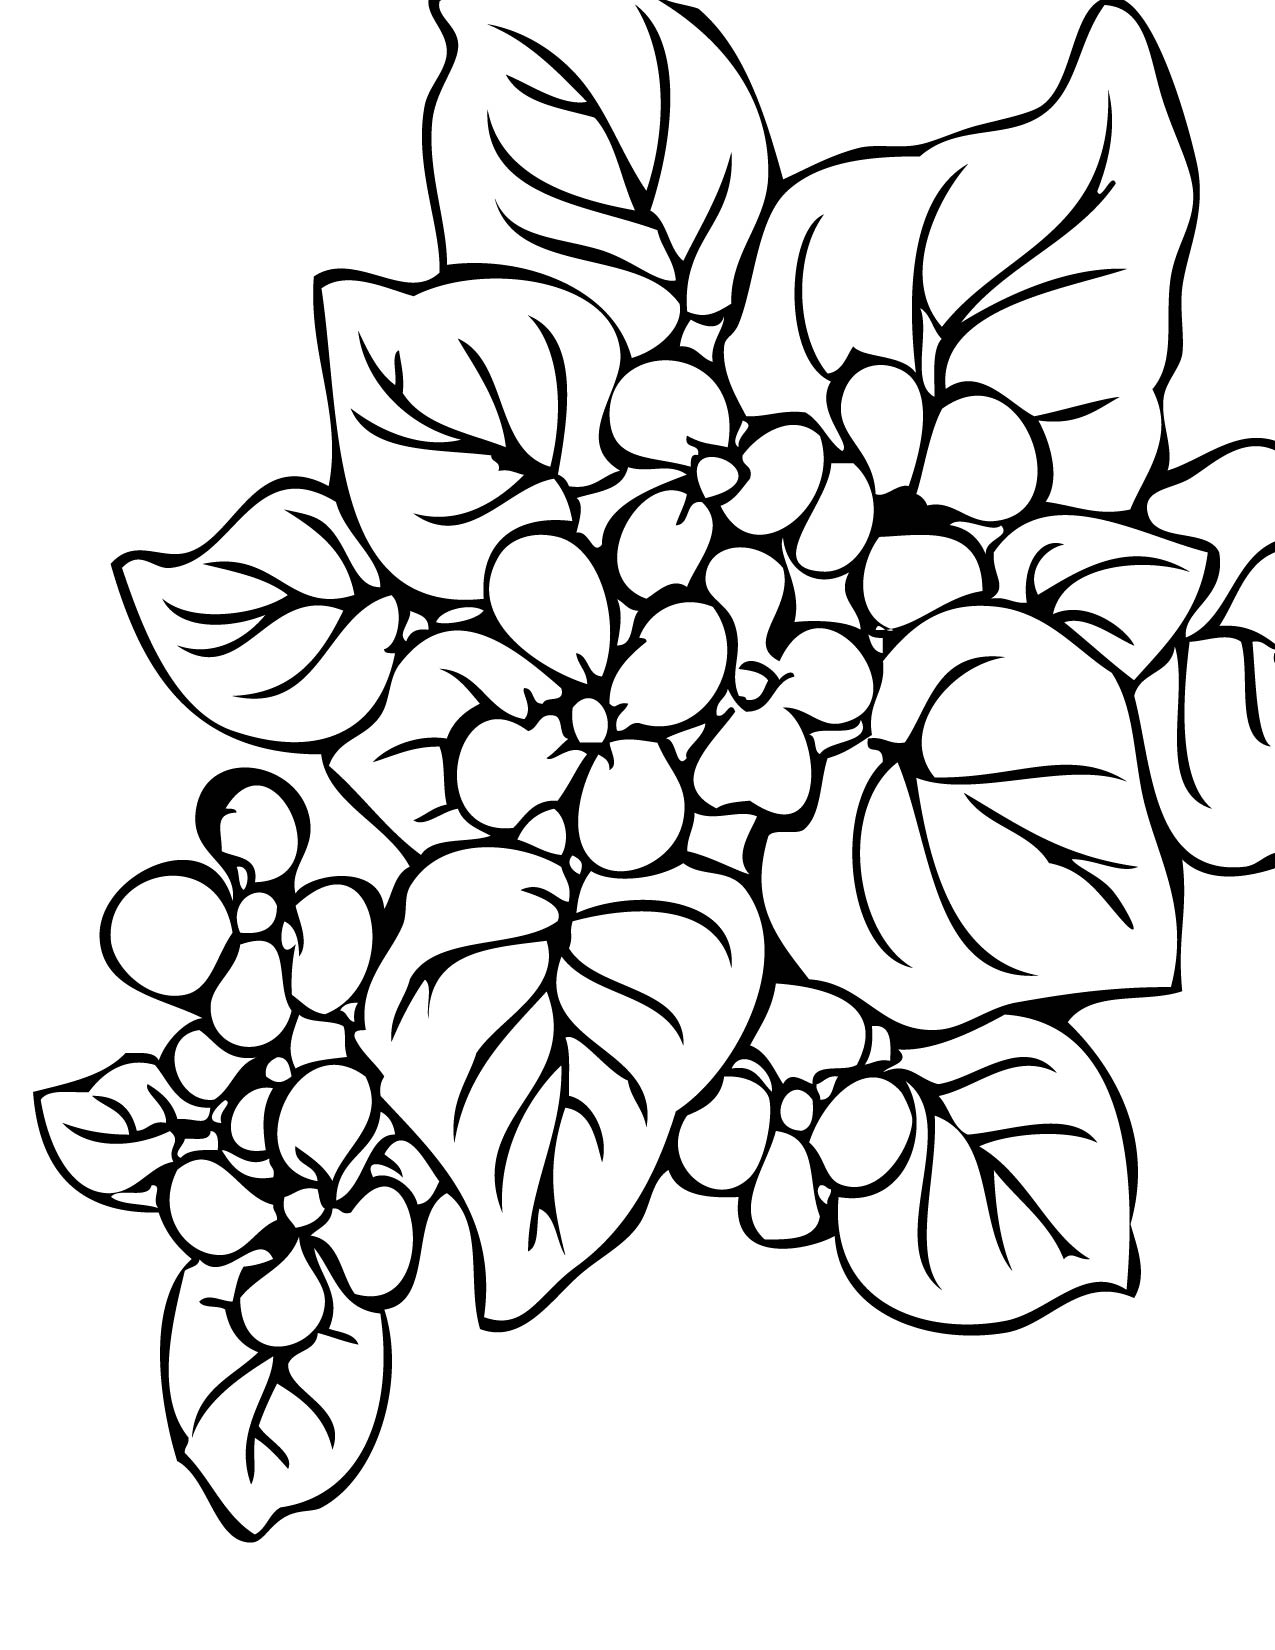 - Rainforest Plants Coloring Pages Azspringtrainingexperience